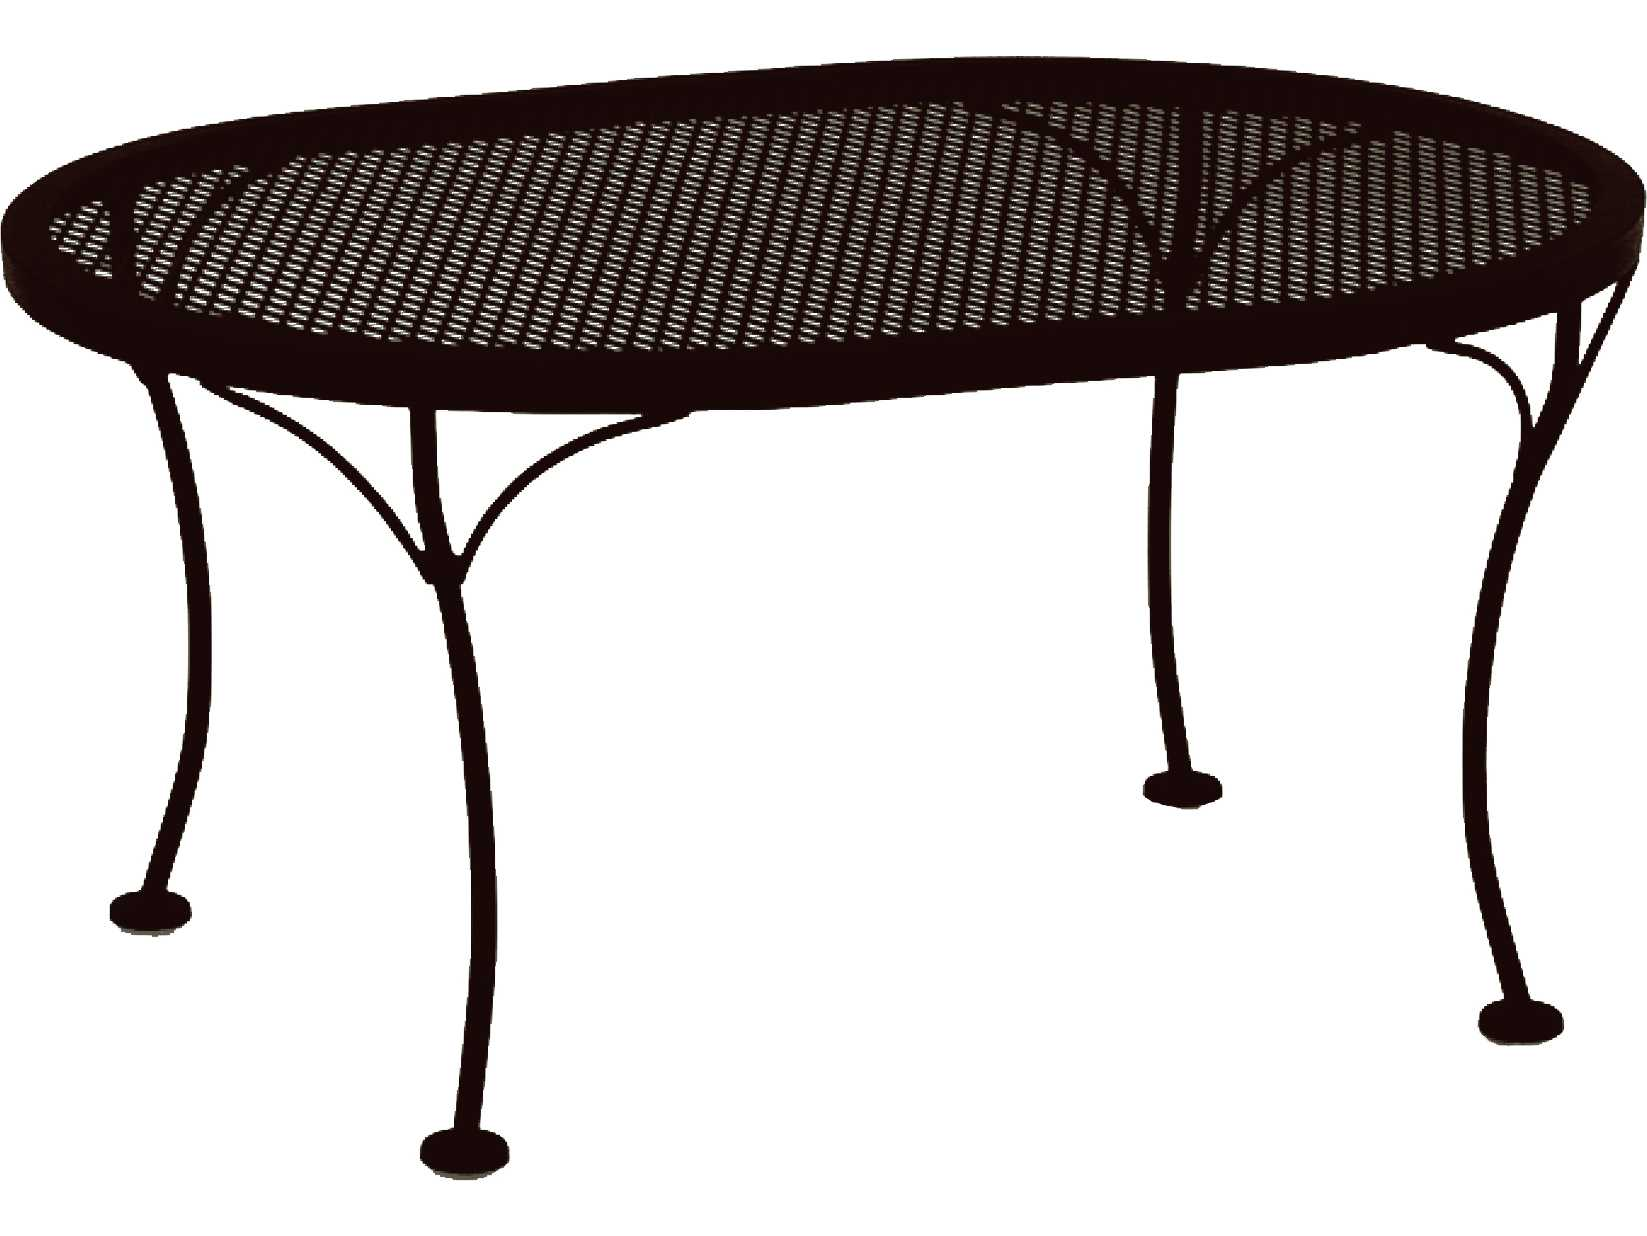 Ow lee mesh wrought iron 34 x 24 oval coffee table 2434 ovmot Patio coffee tables